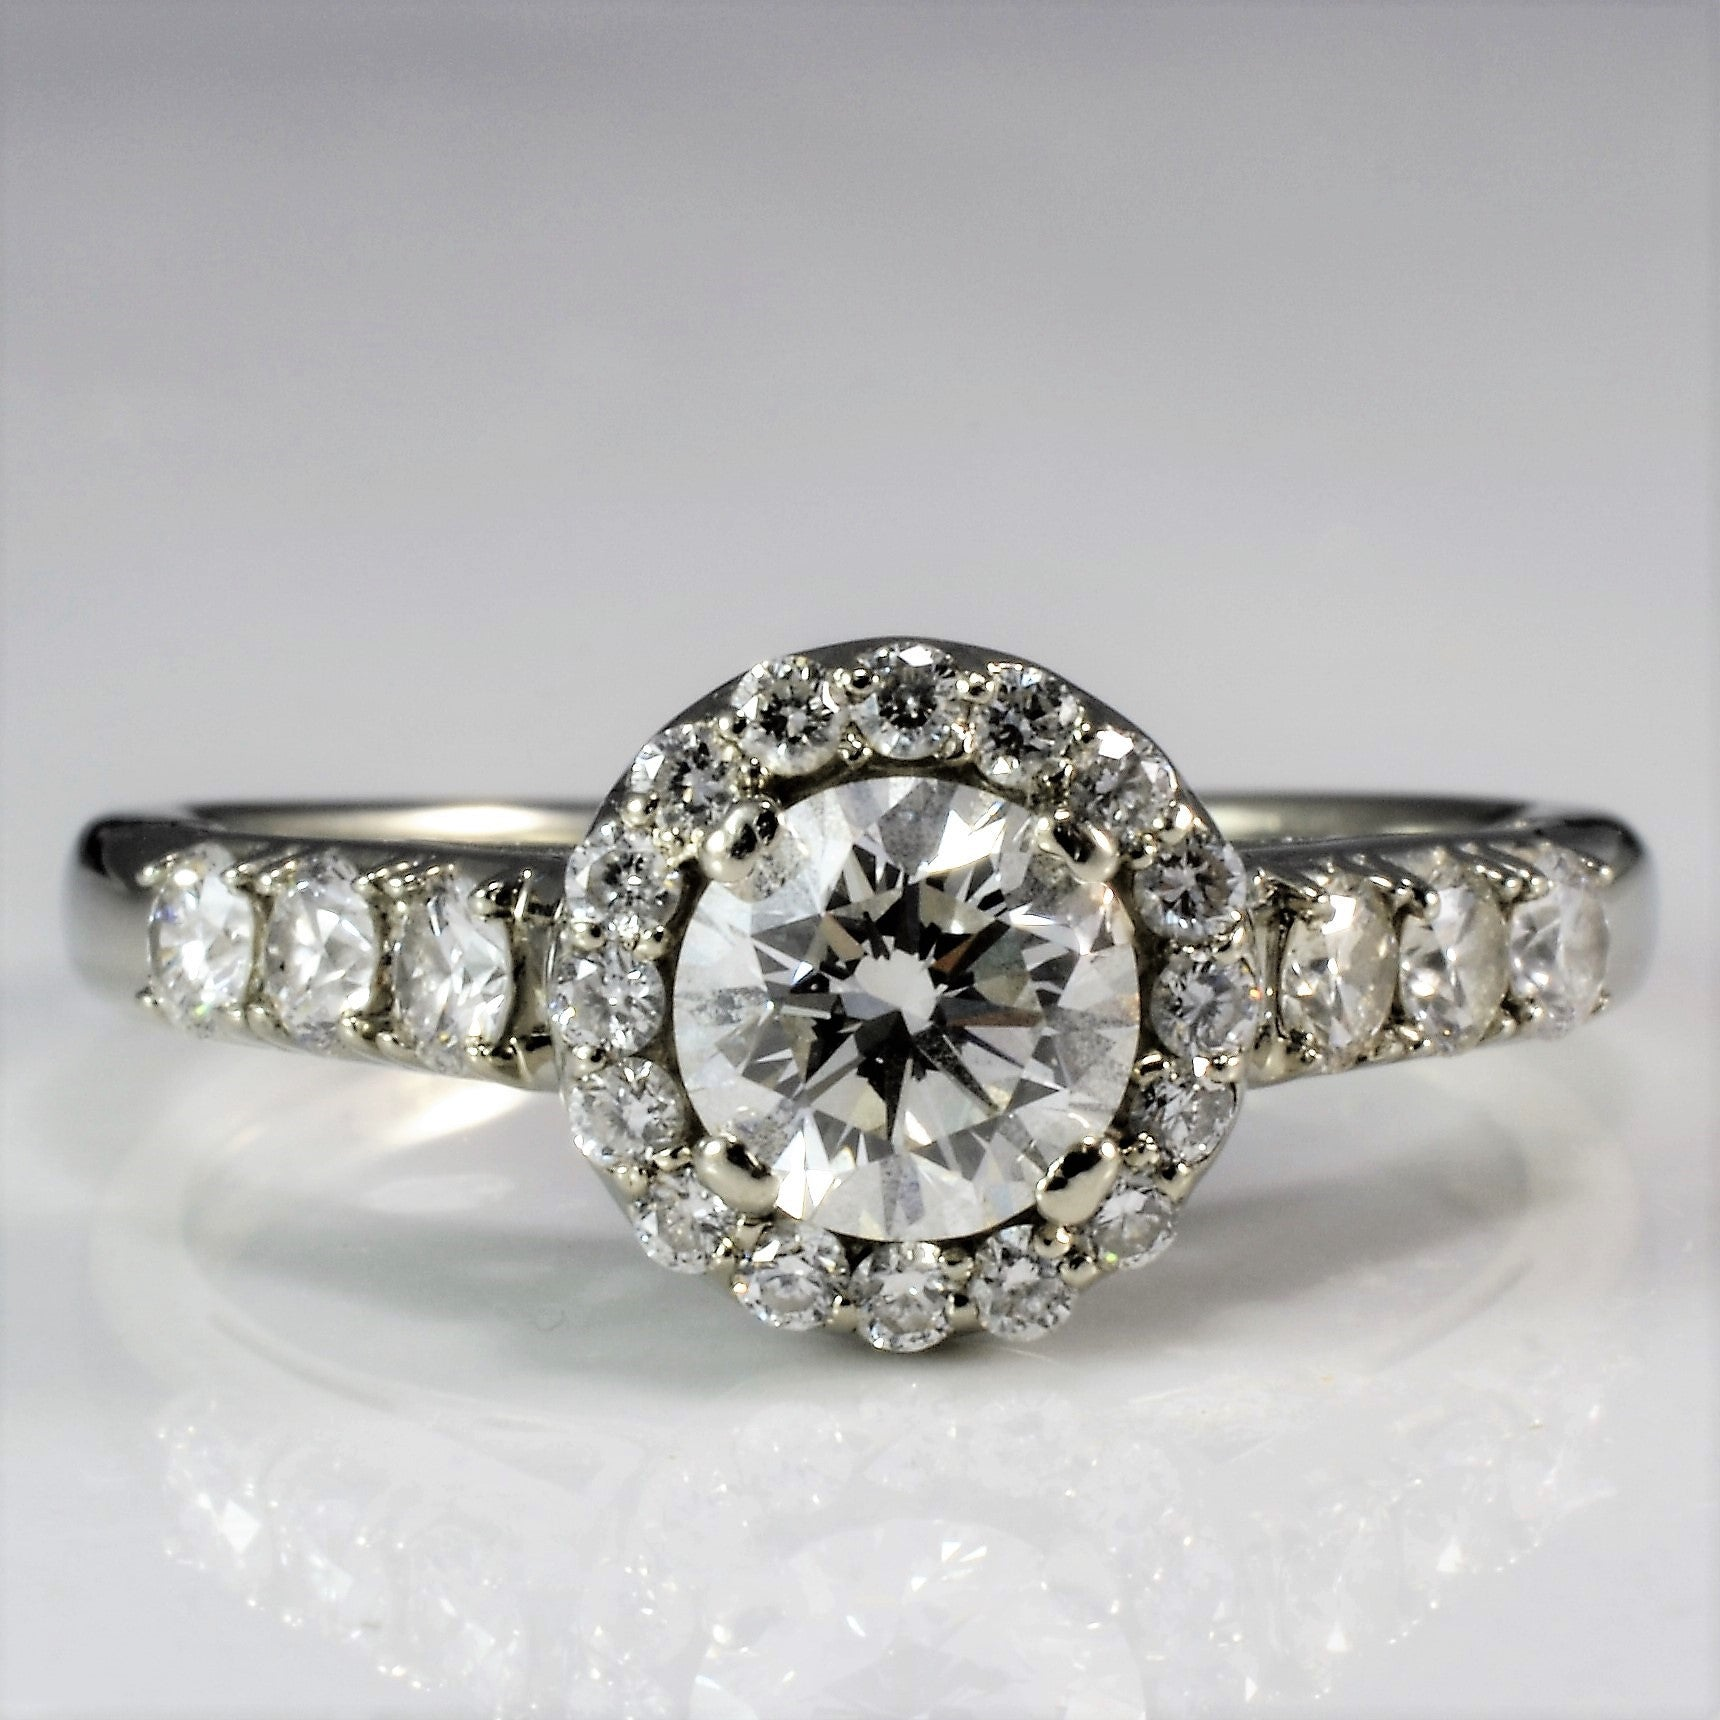 Delicate Diamond Halo Engagement Ring | 0.83 ctw, SZ 6 |